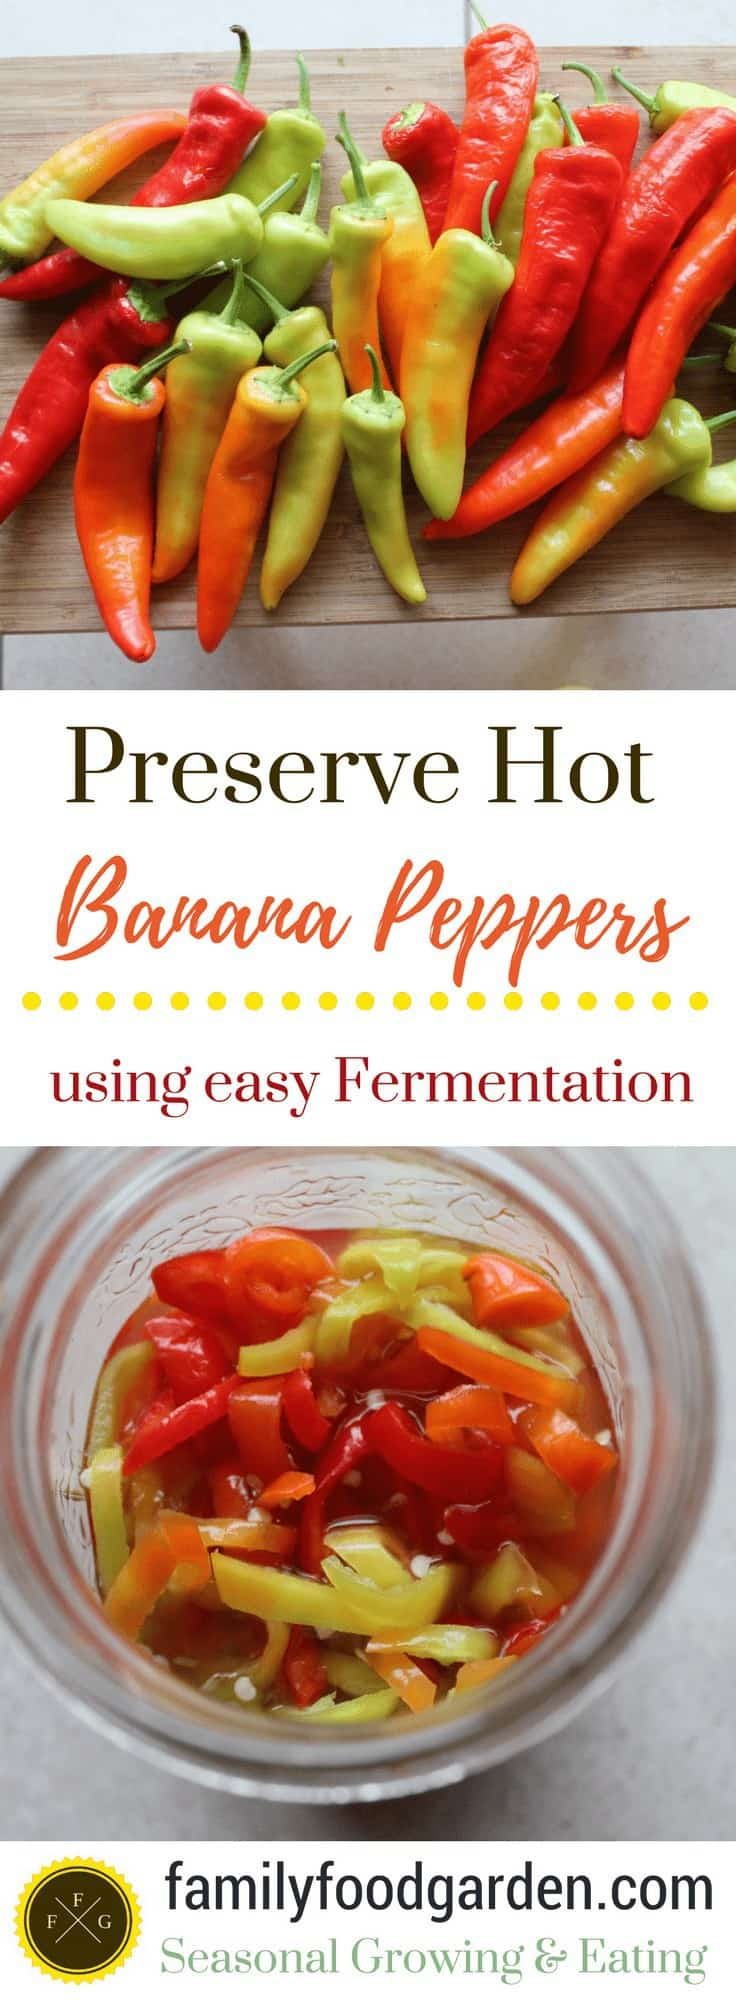 Preserve Hot Banana Peppers with Fermentation